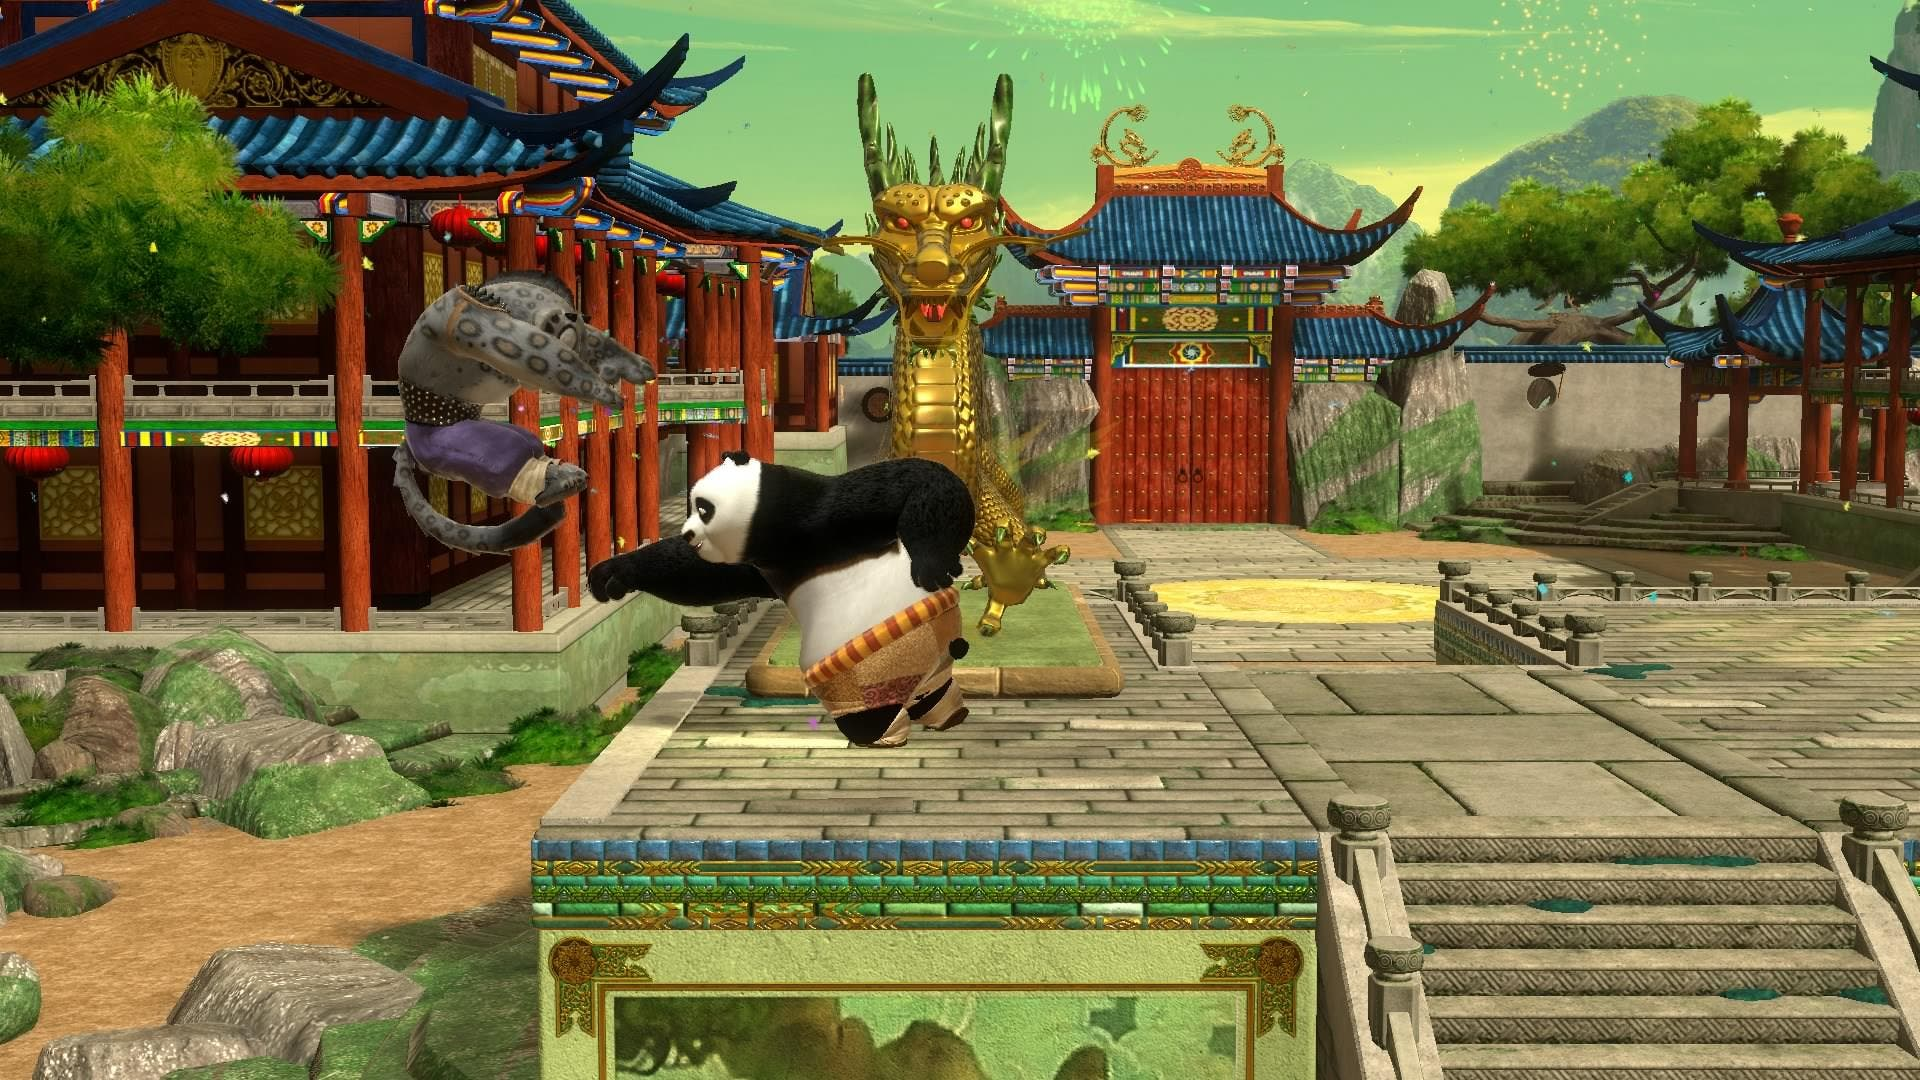 'Kung Fu Panda: Showdown of Legendary Legends' llegará a Wii U y 3DS este otoño